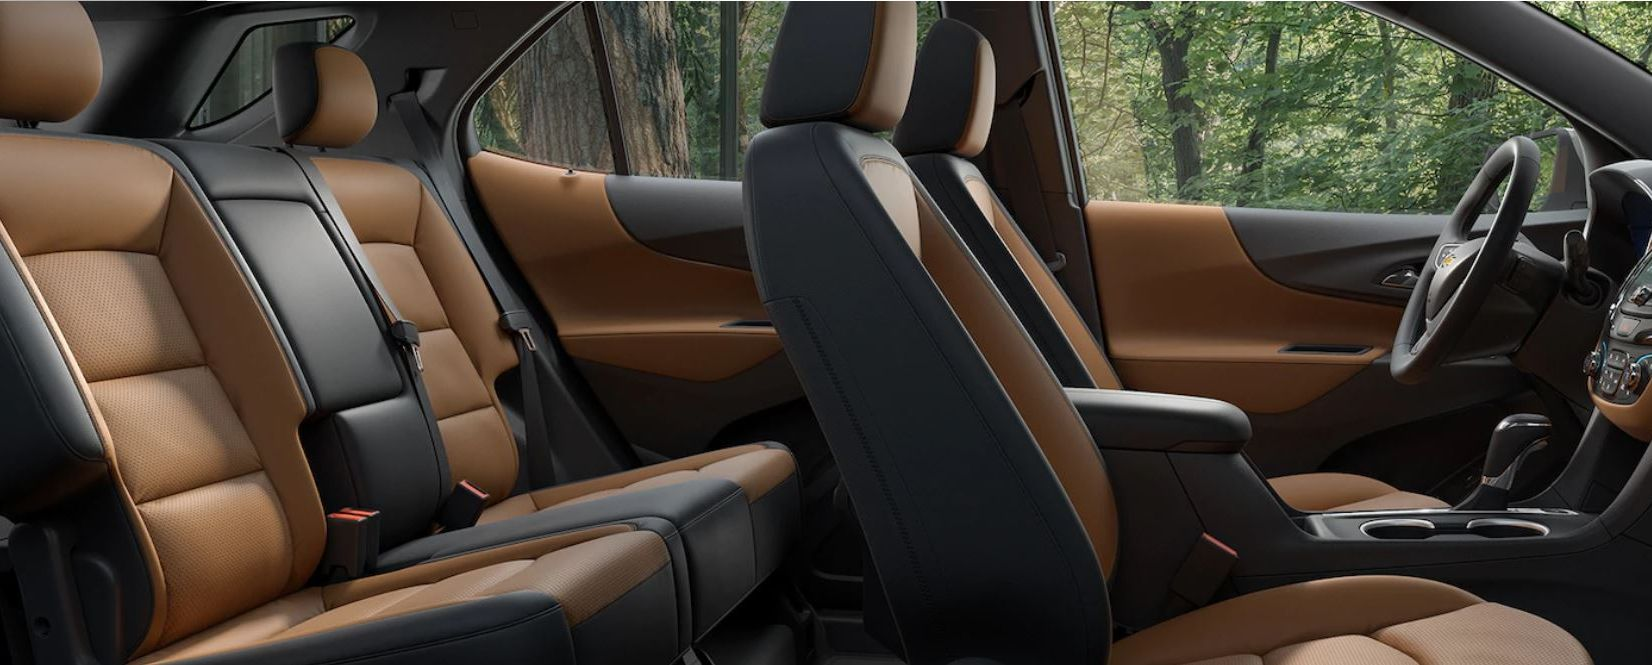 Seating in the 2019 Equinox